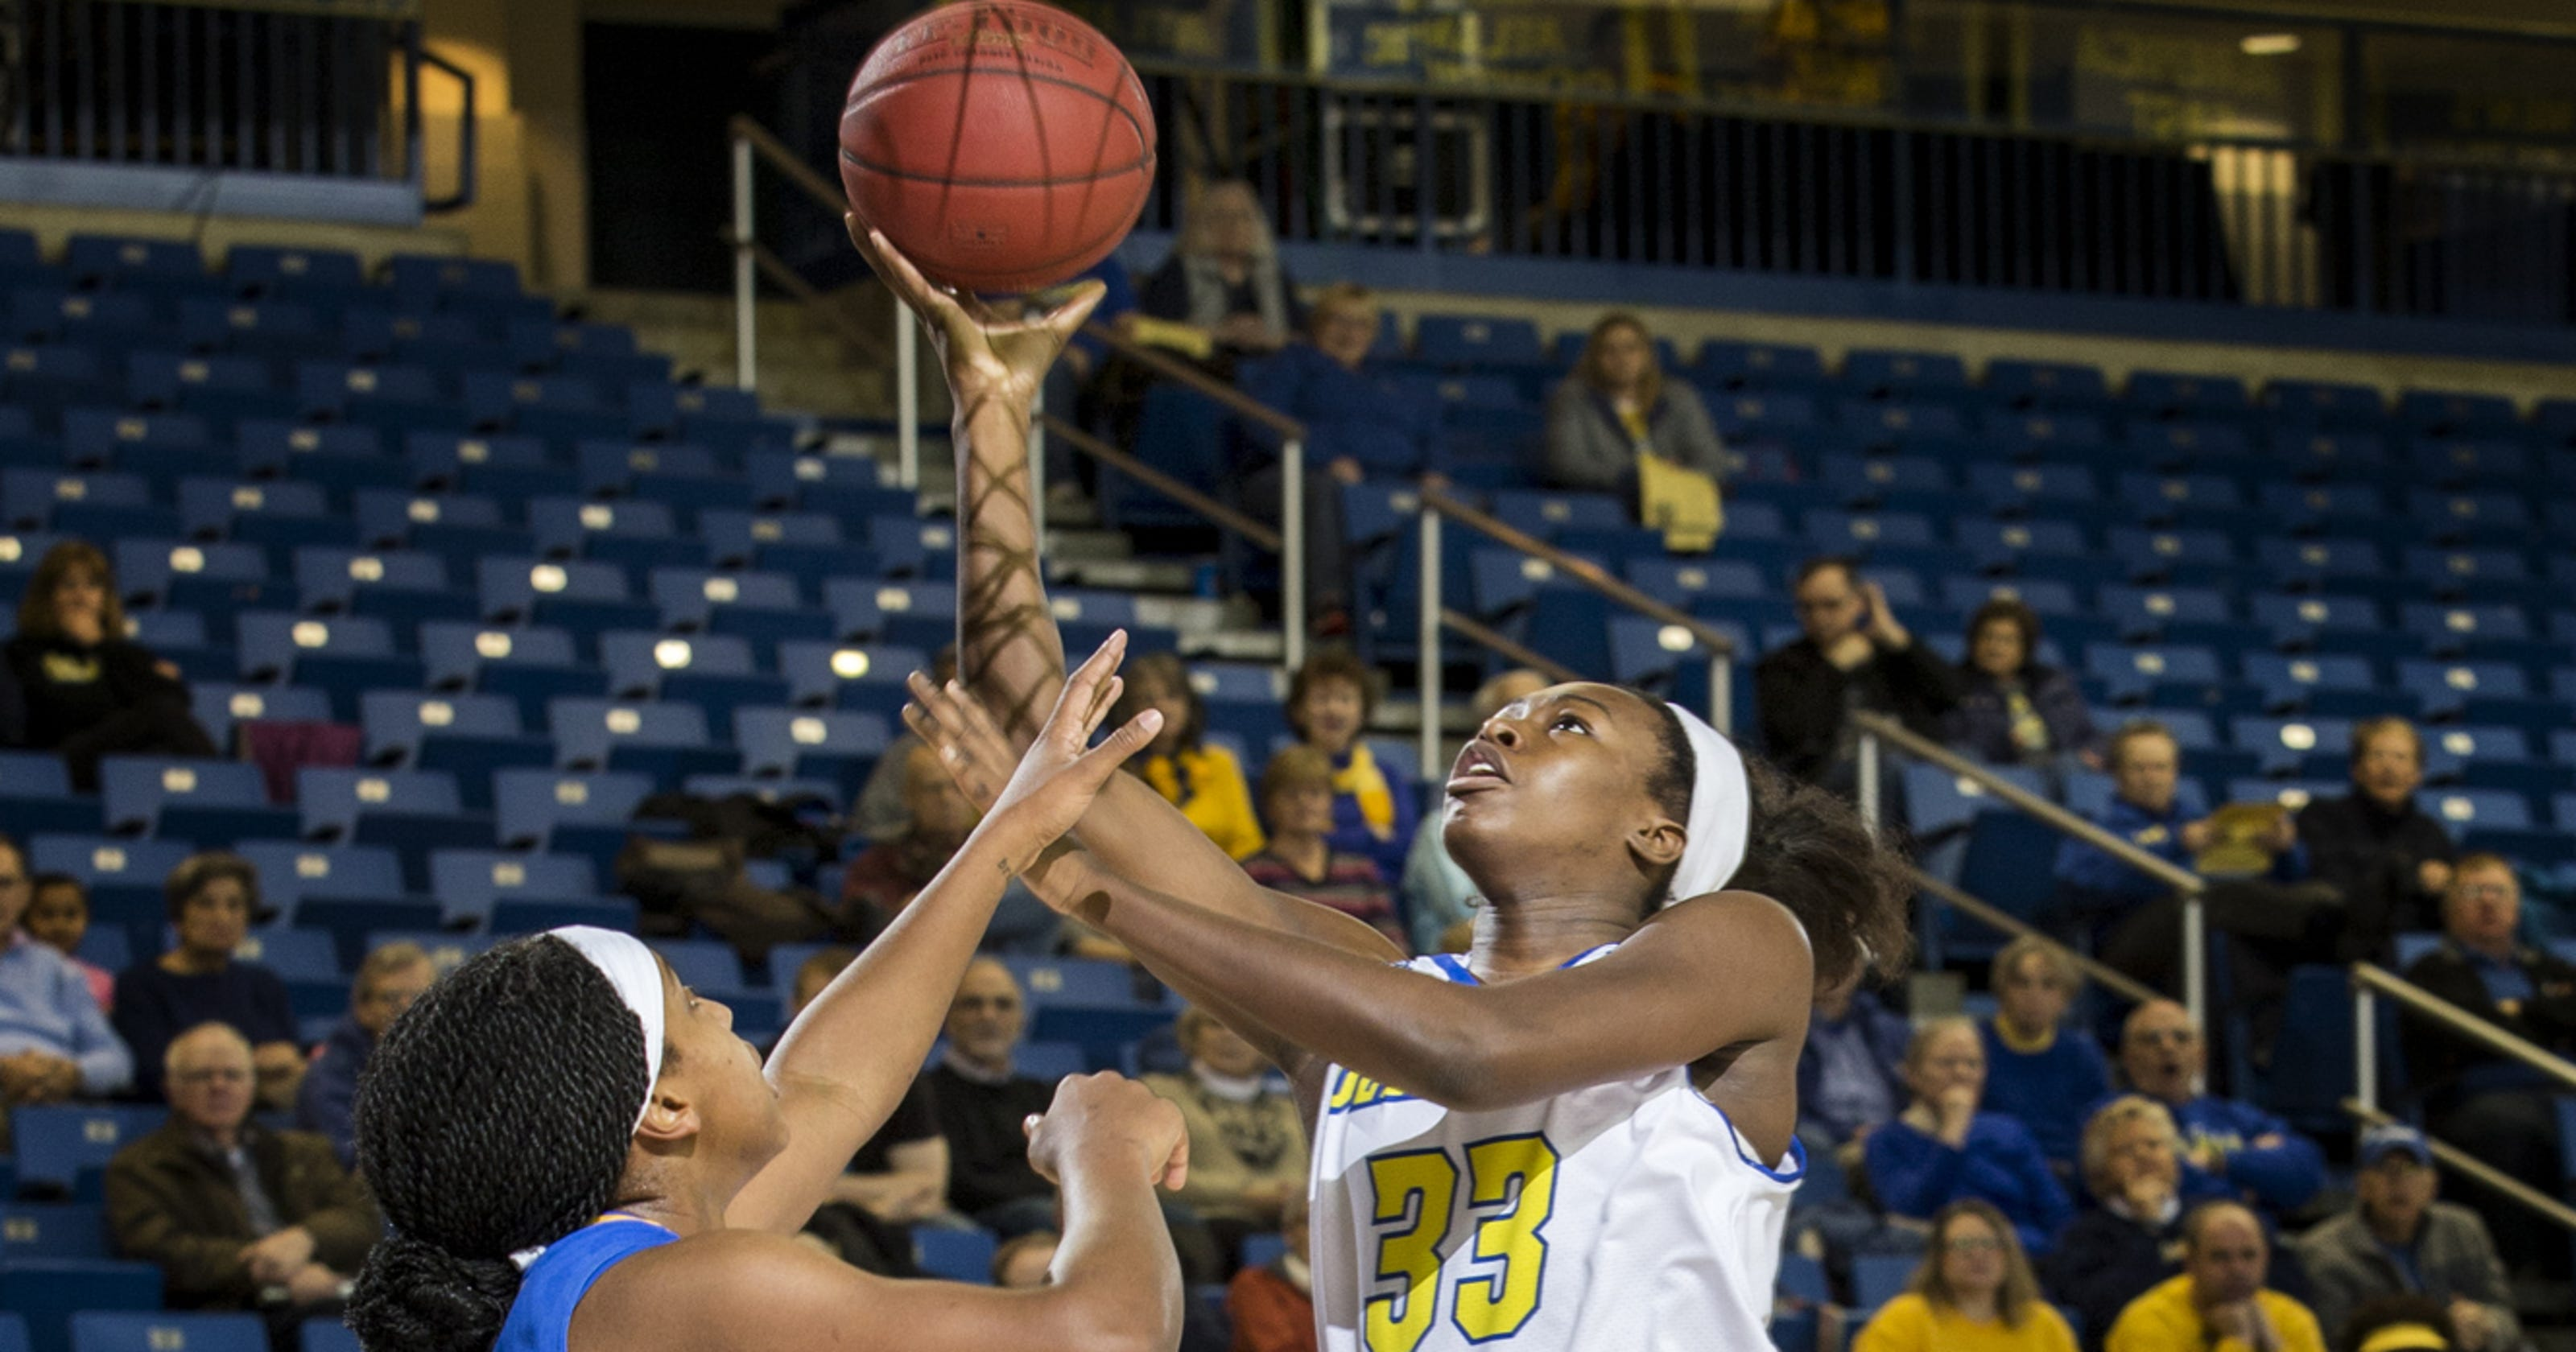 delaware's women's basketball schedule features caa opener at drexel